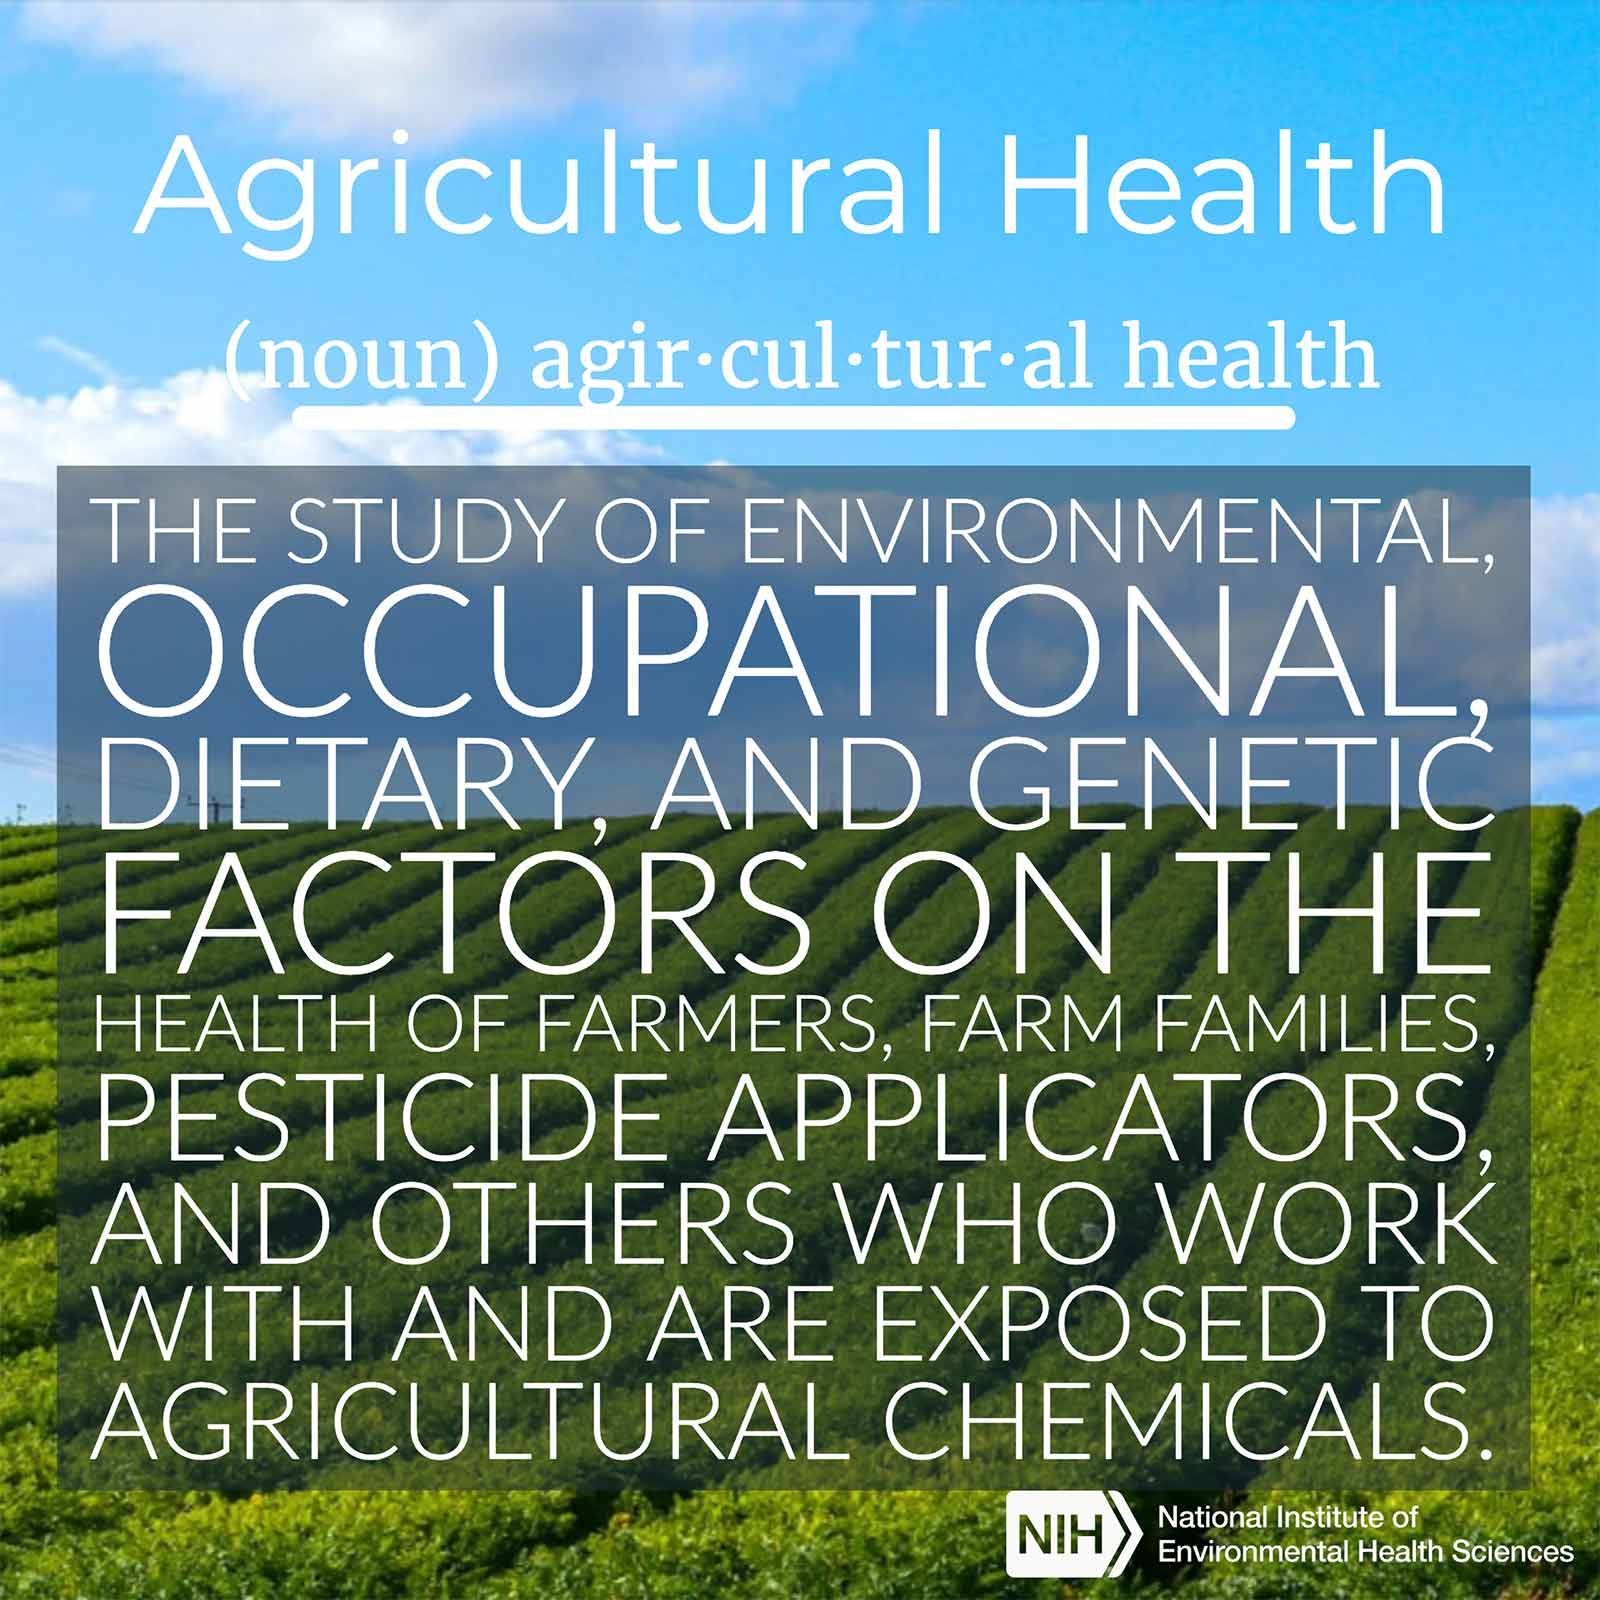 "Agricultural Health (noun) defined as ""the study of environmental, occupational, dietary, and genetic factors on the health of farmers, farm families, pesticide applicators, and others who work with and are exposed to agricultural chemicals."""